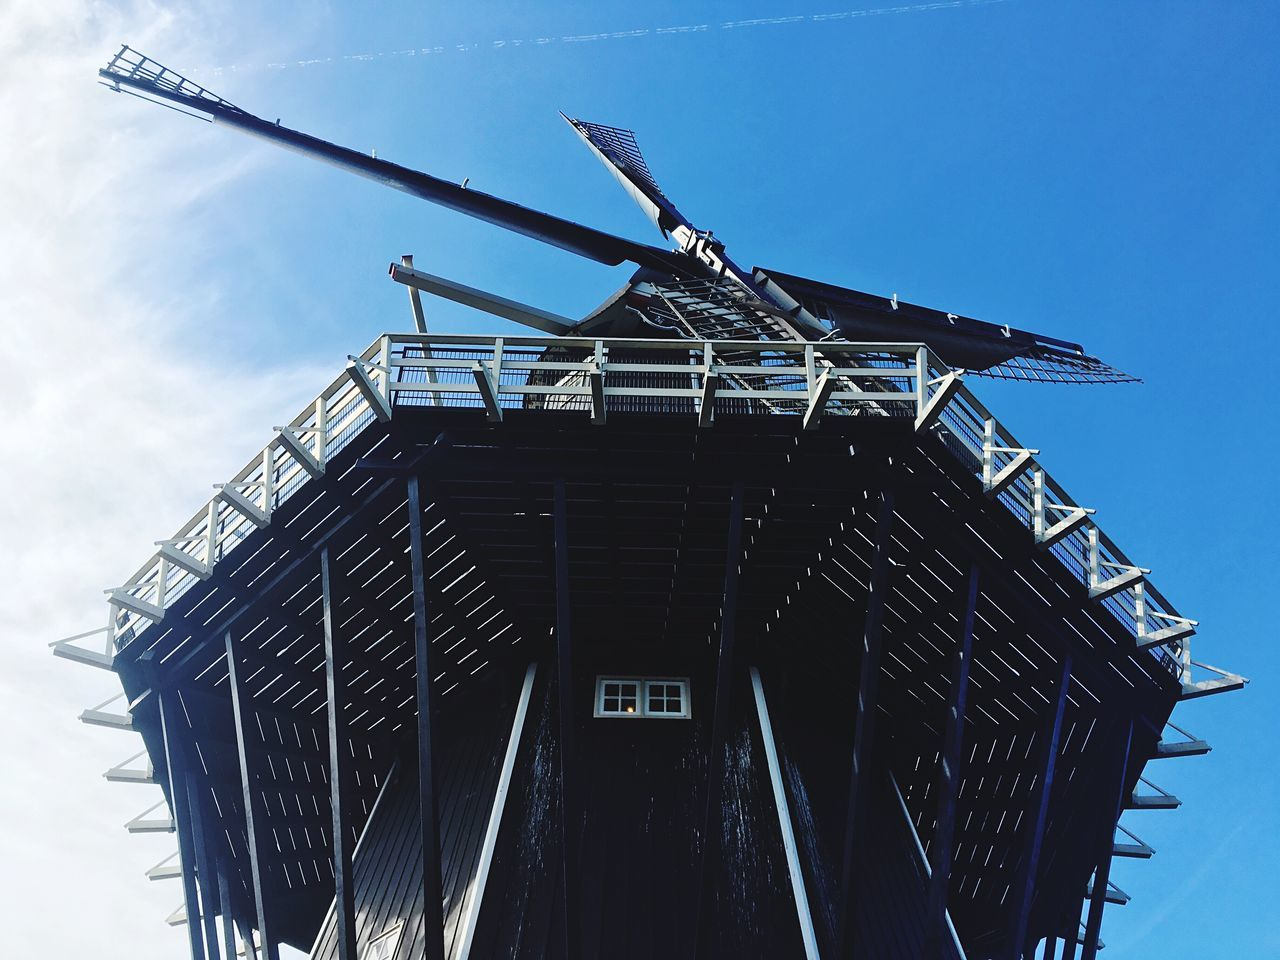 Iphonephotography IPhone Photography IPhoneography Windmill Low Angle View Built Structure Building Exterior Architecture Sky Outdoors No People Day Renewable Energy